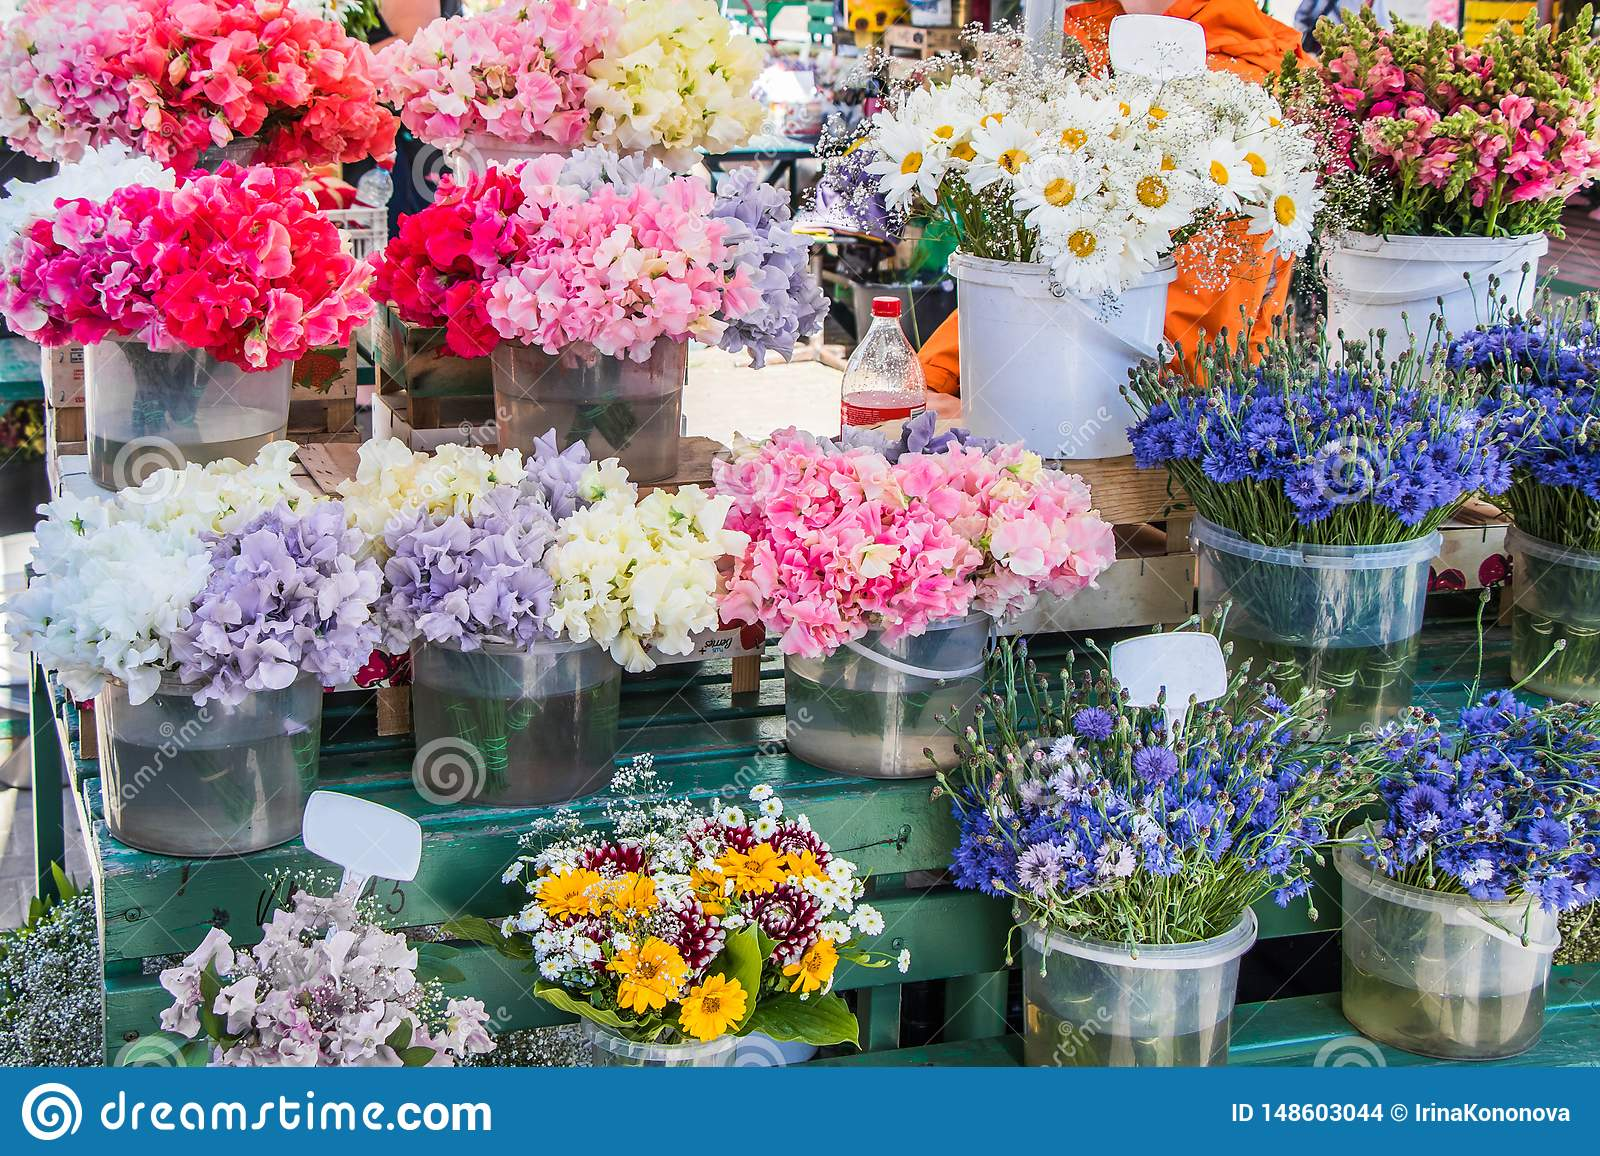 Sweet peas, chamomile, cornflower and other flowers